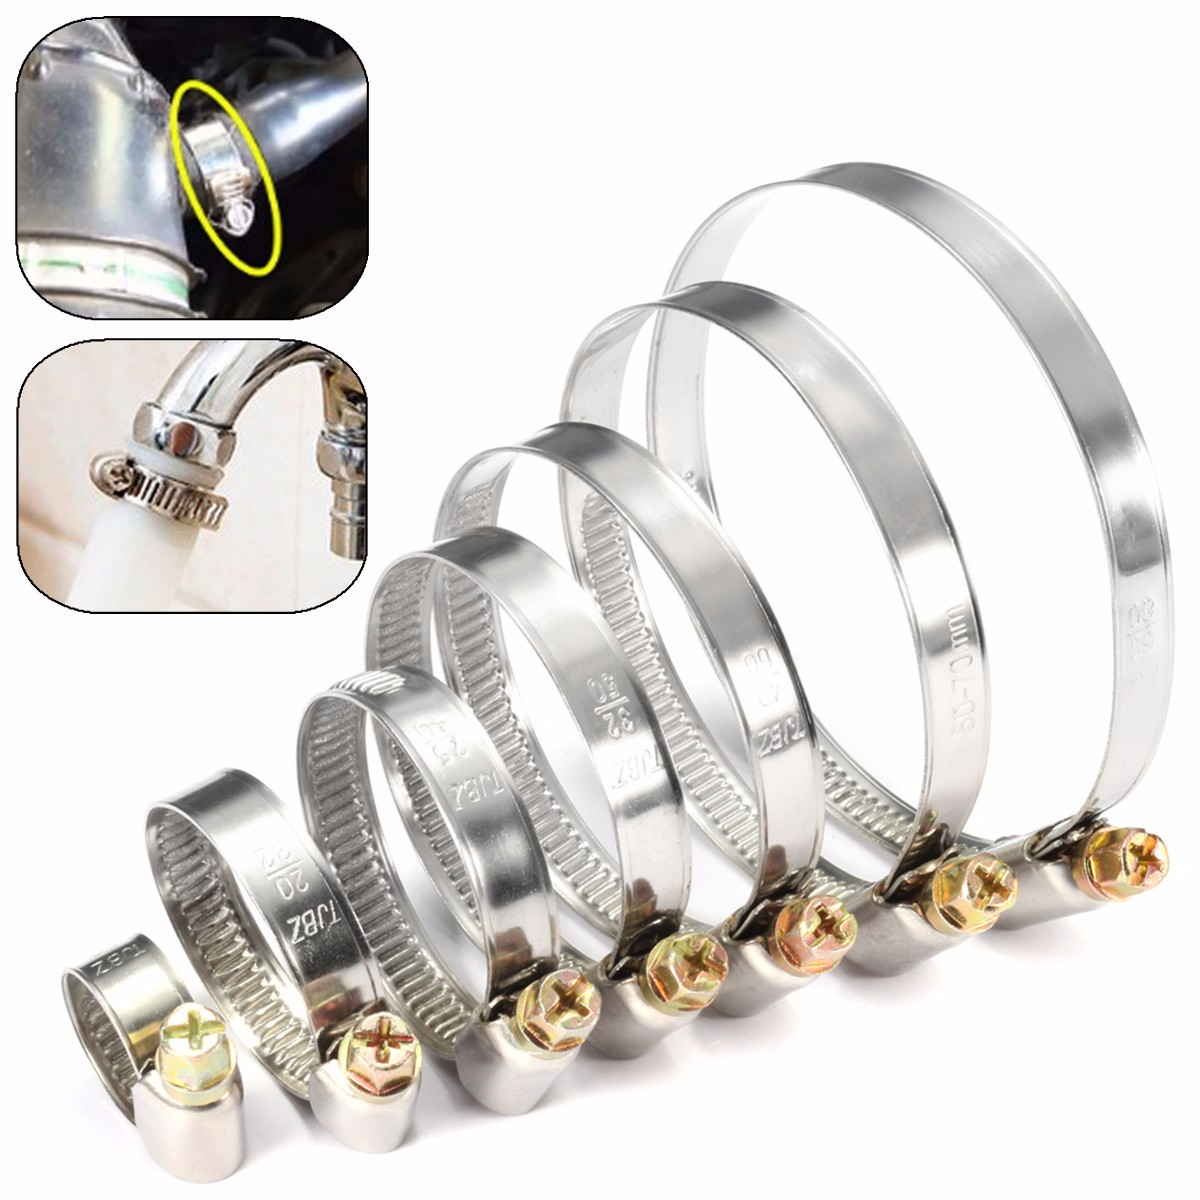 1/5/10pcs Pipe Clamps Genuine Jubilee Stainless Steel Hose Clips Fuel Hose Pipe Clamps Worm Drive Durable Anti-oxidation 10pcs hose clamp double ears o clips clamp worm drive fuel water hose pipe clamps clips